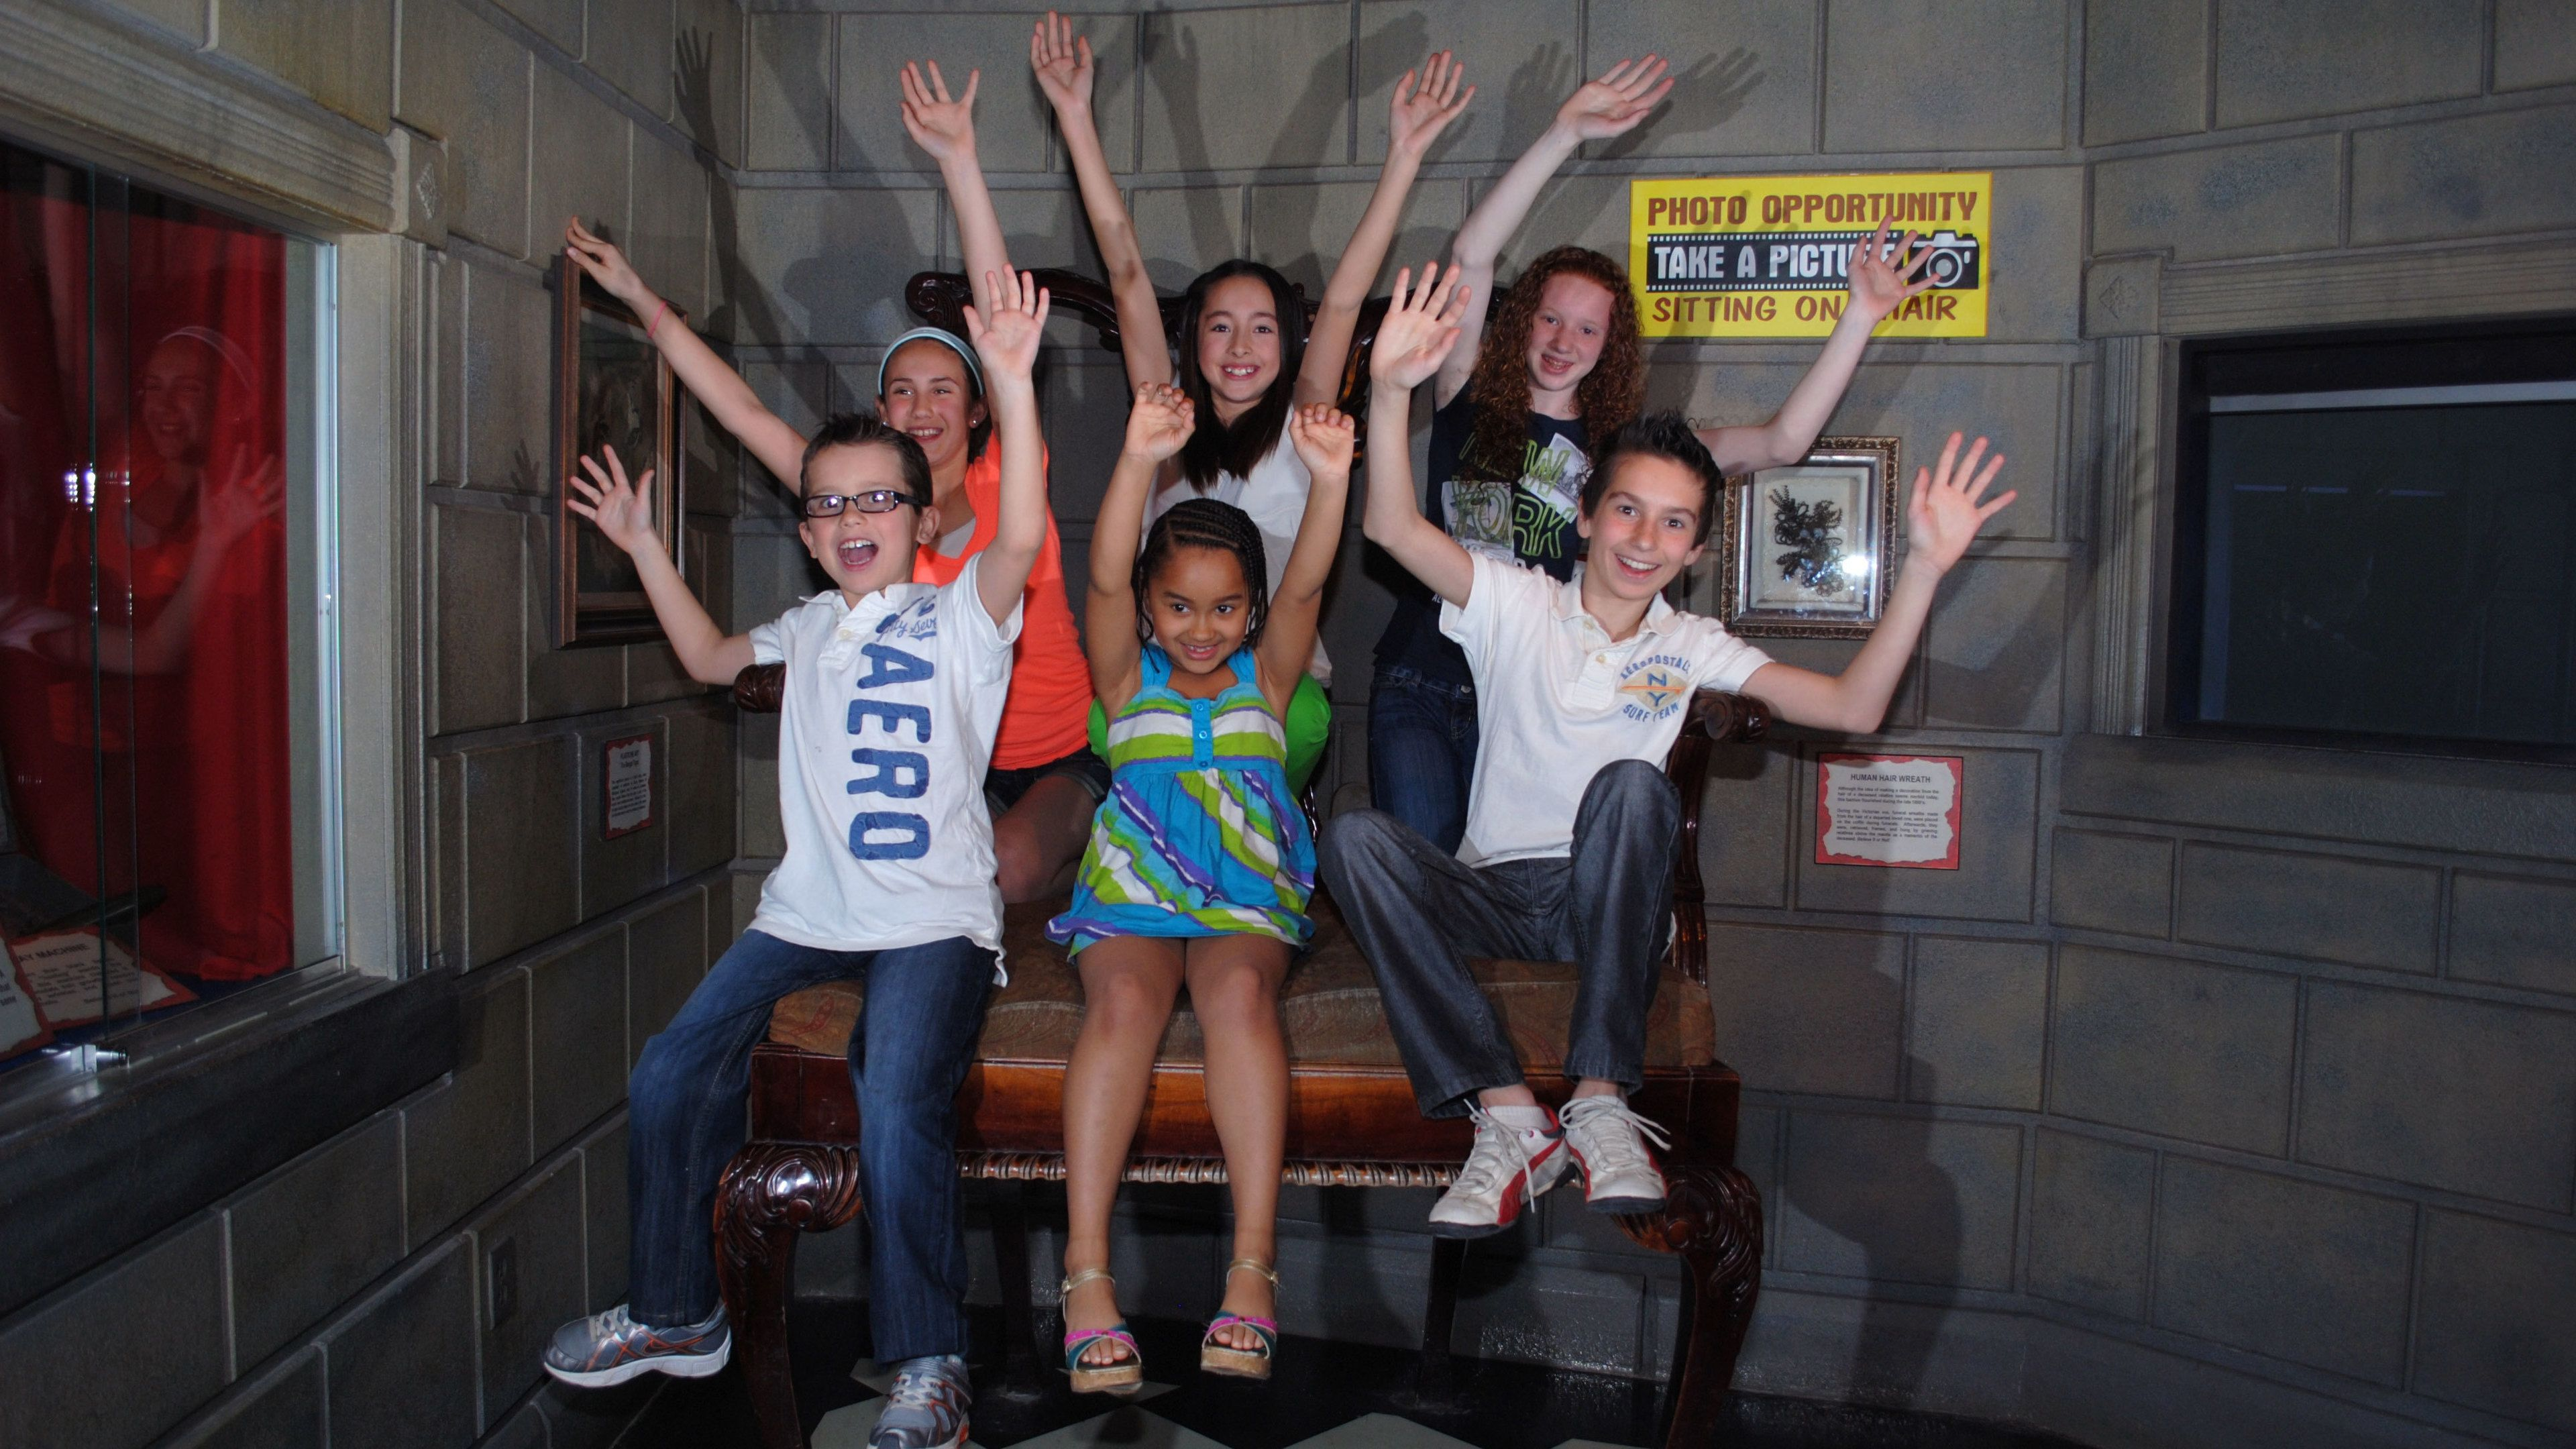 Taking a group photo at Ripley's Believe it or Not Museum in Niagara Falls